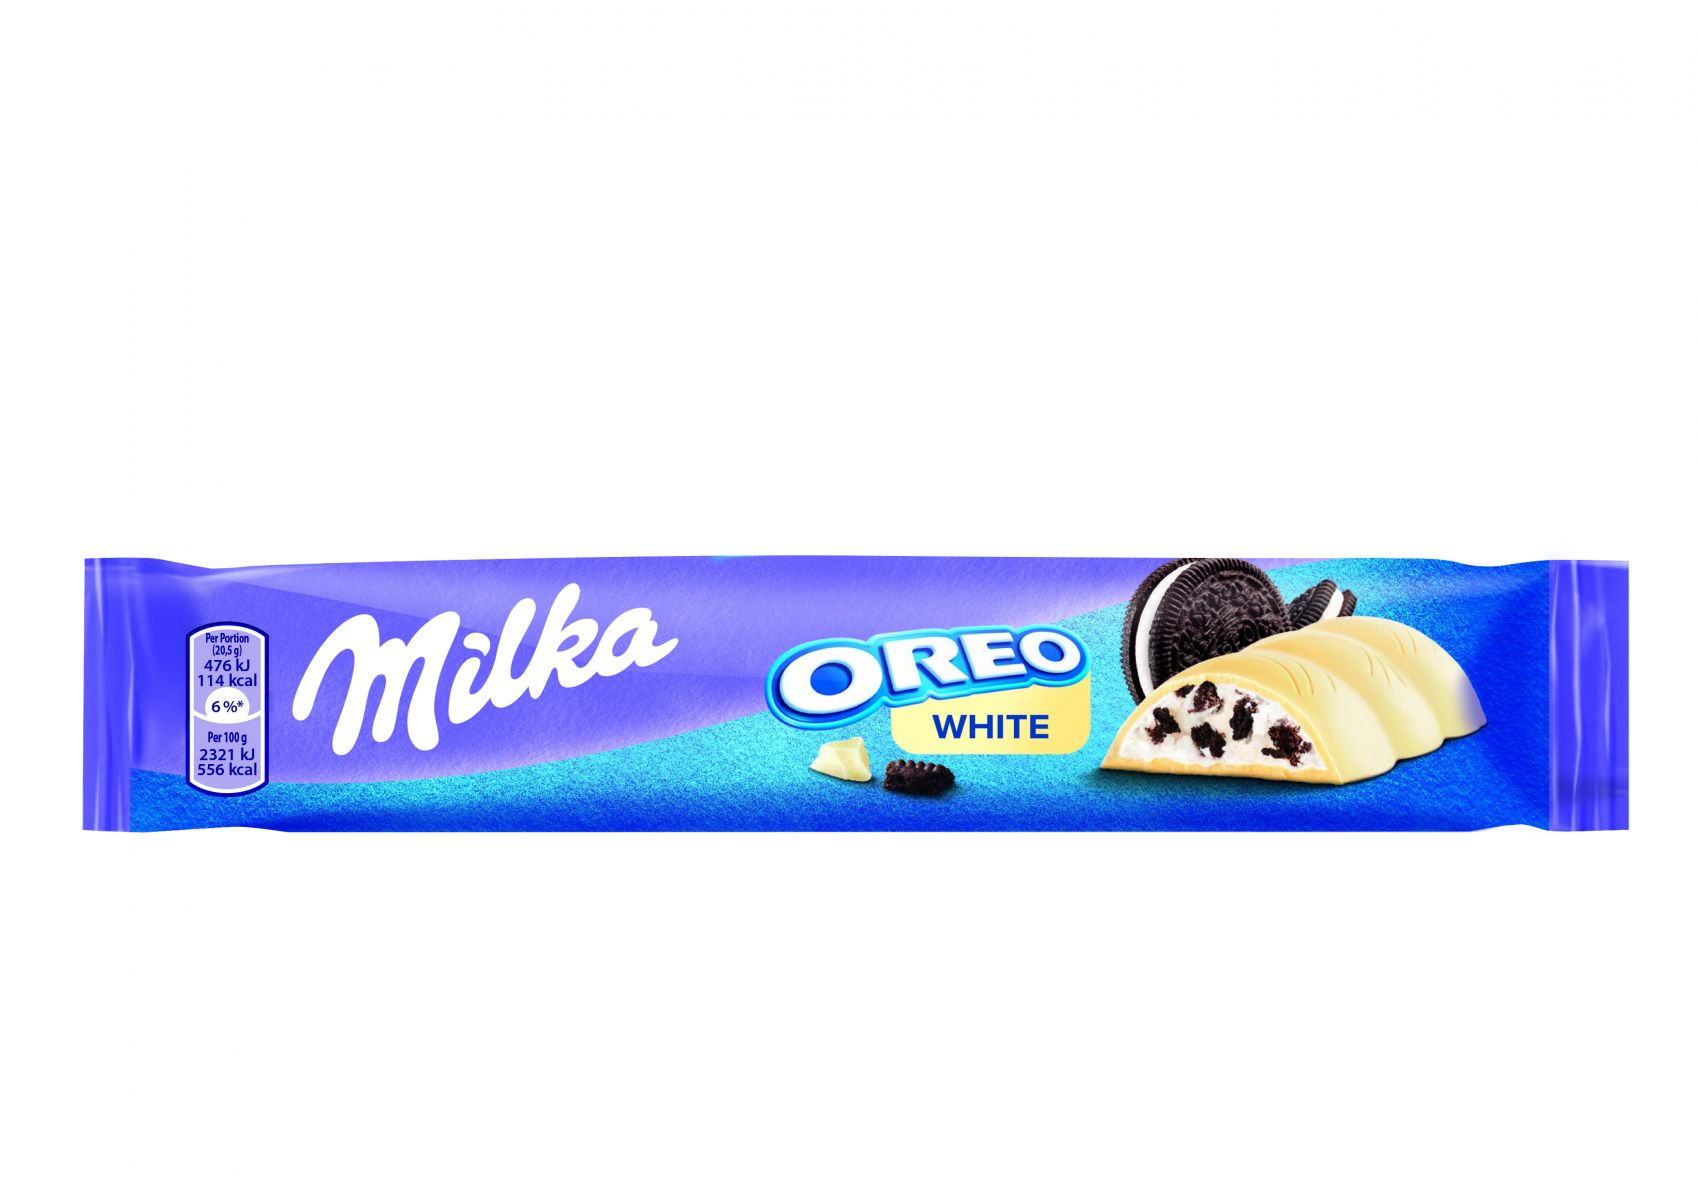 Milka Oreo White 41g front high res